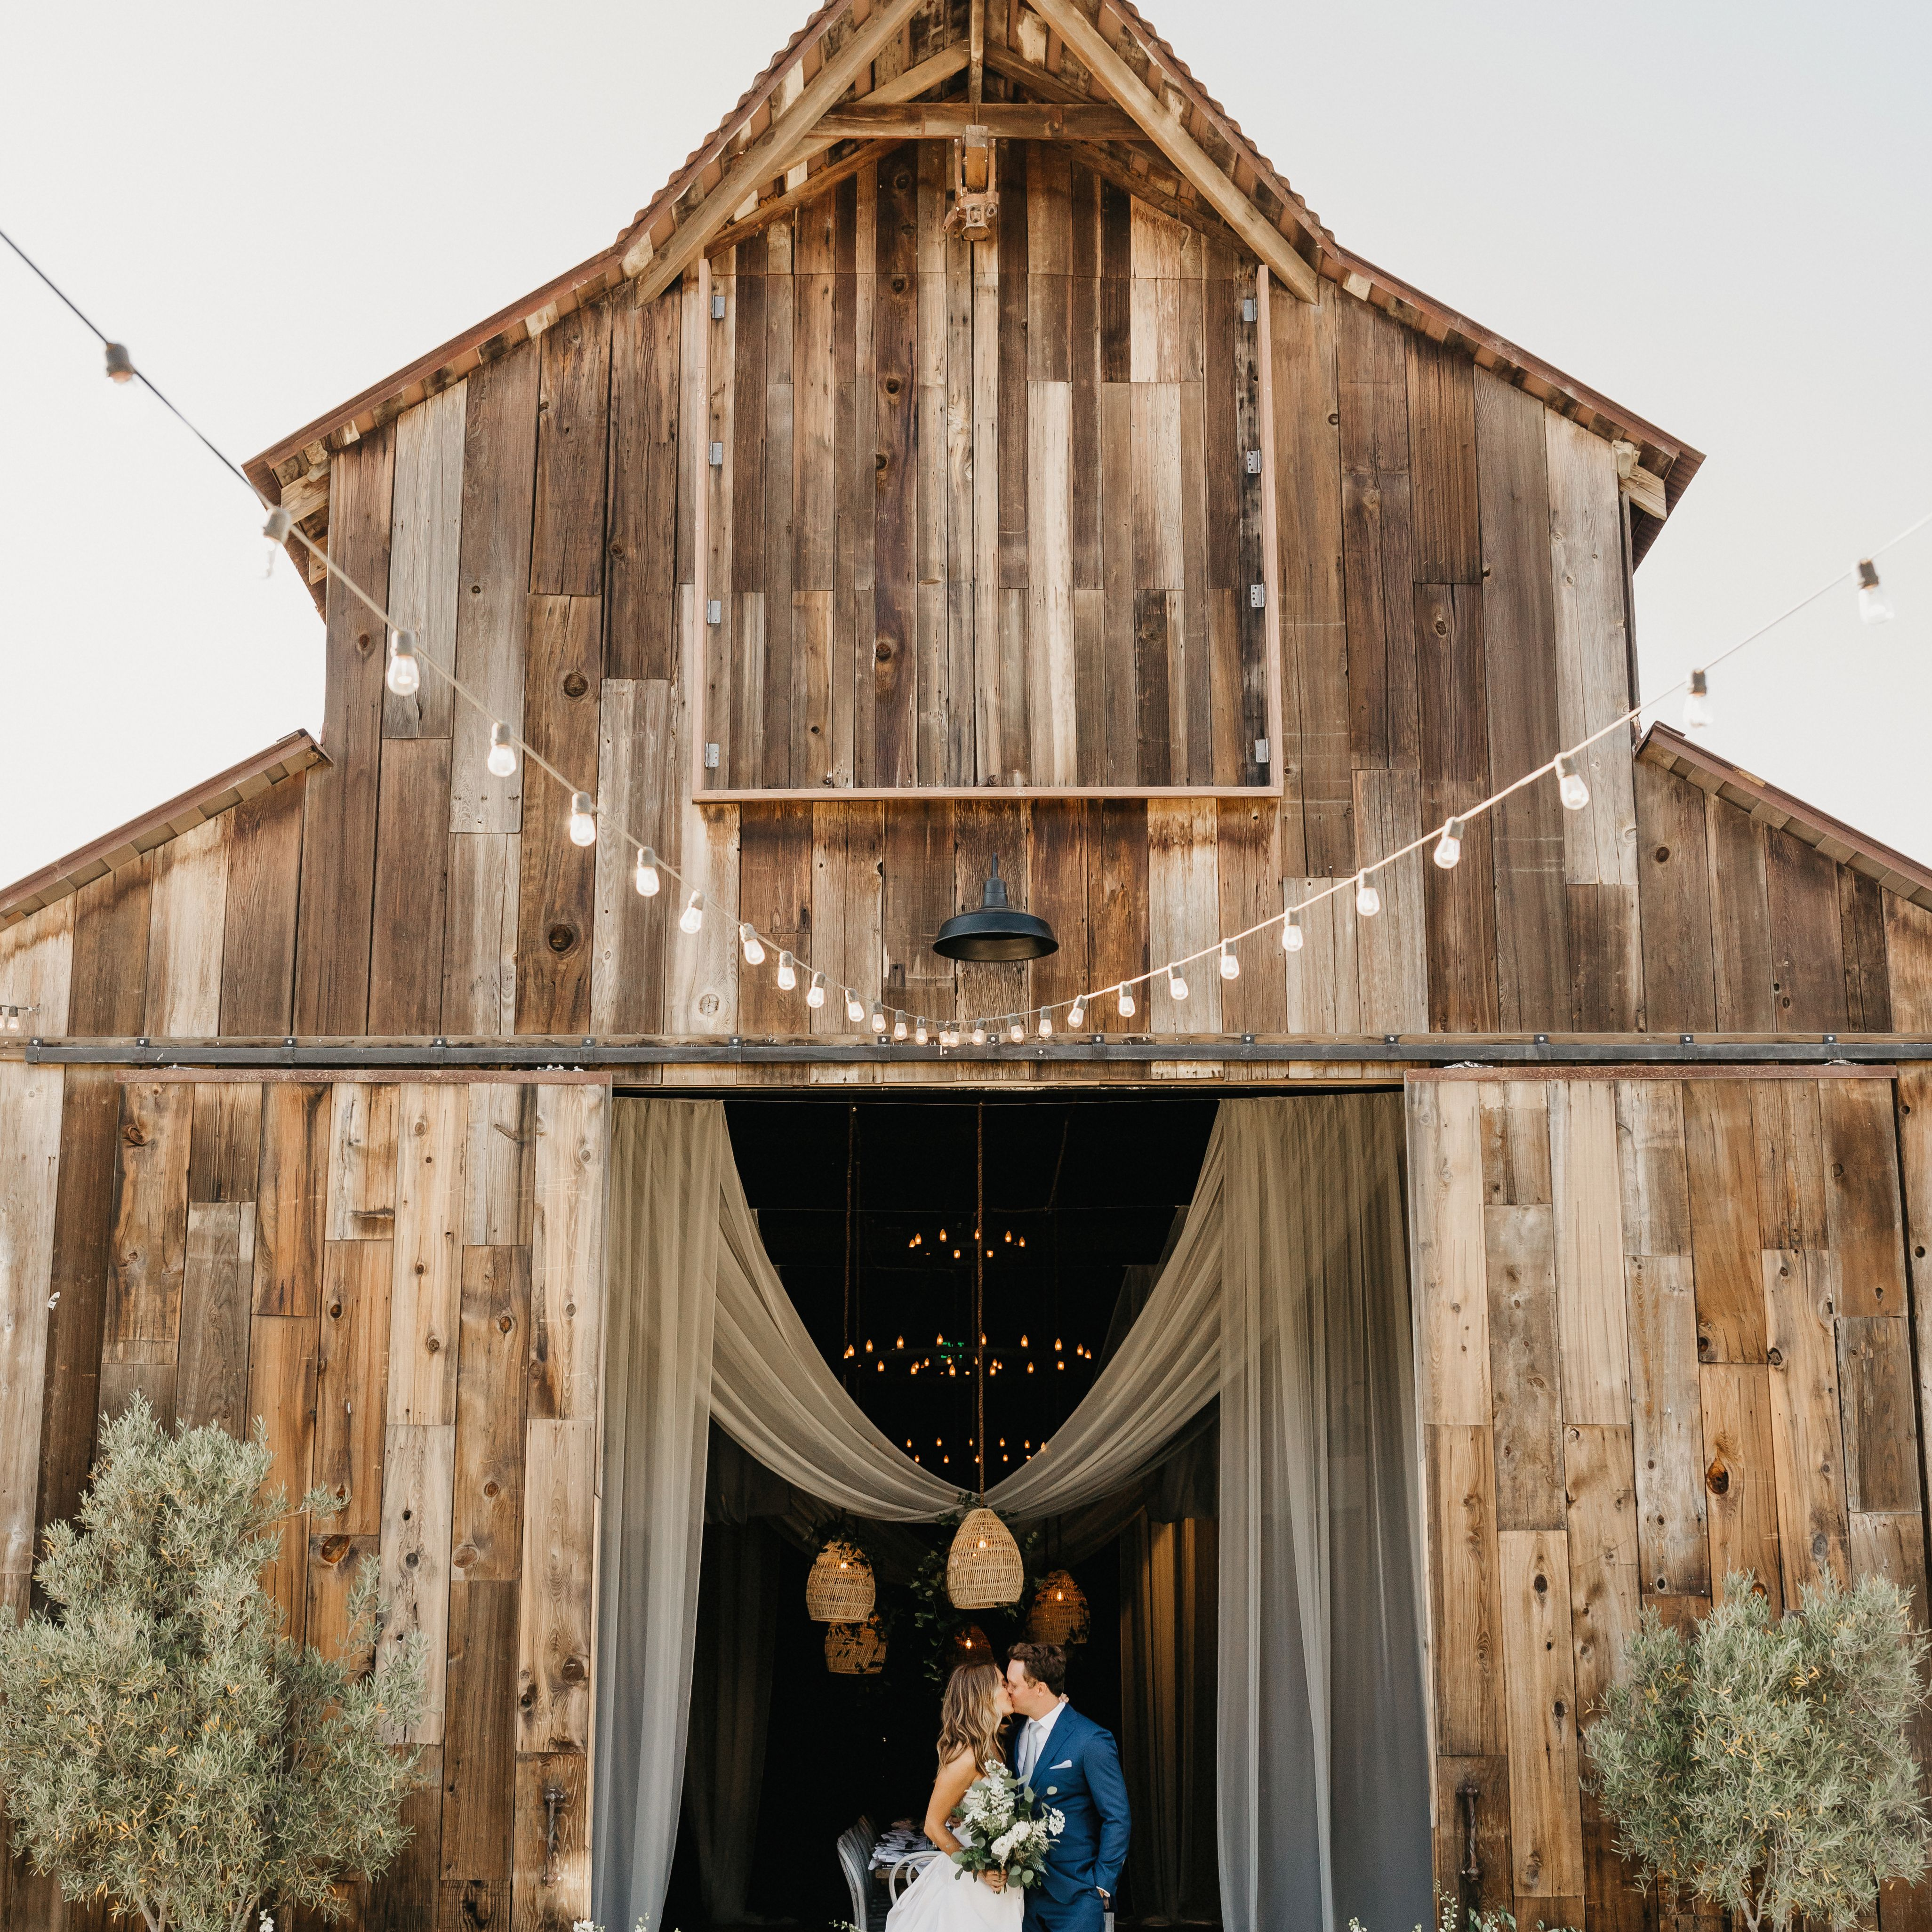 39 Barn Wedding Ideas For Any Yes Any Style